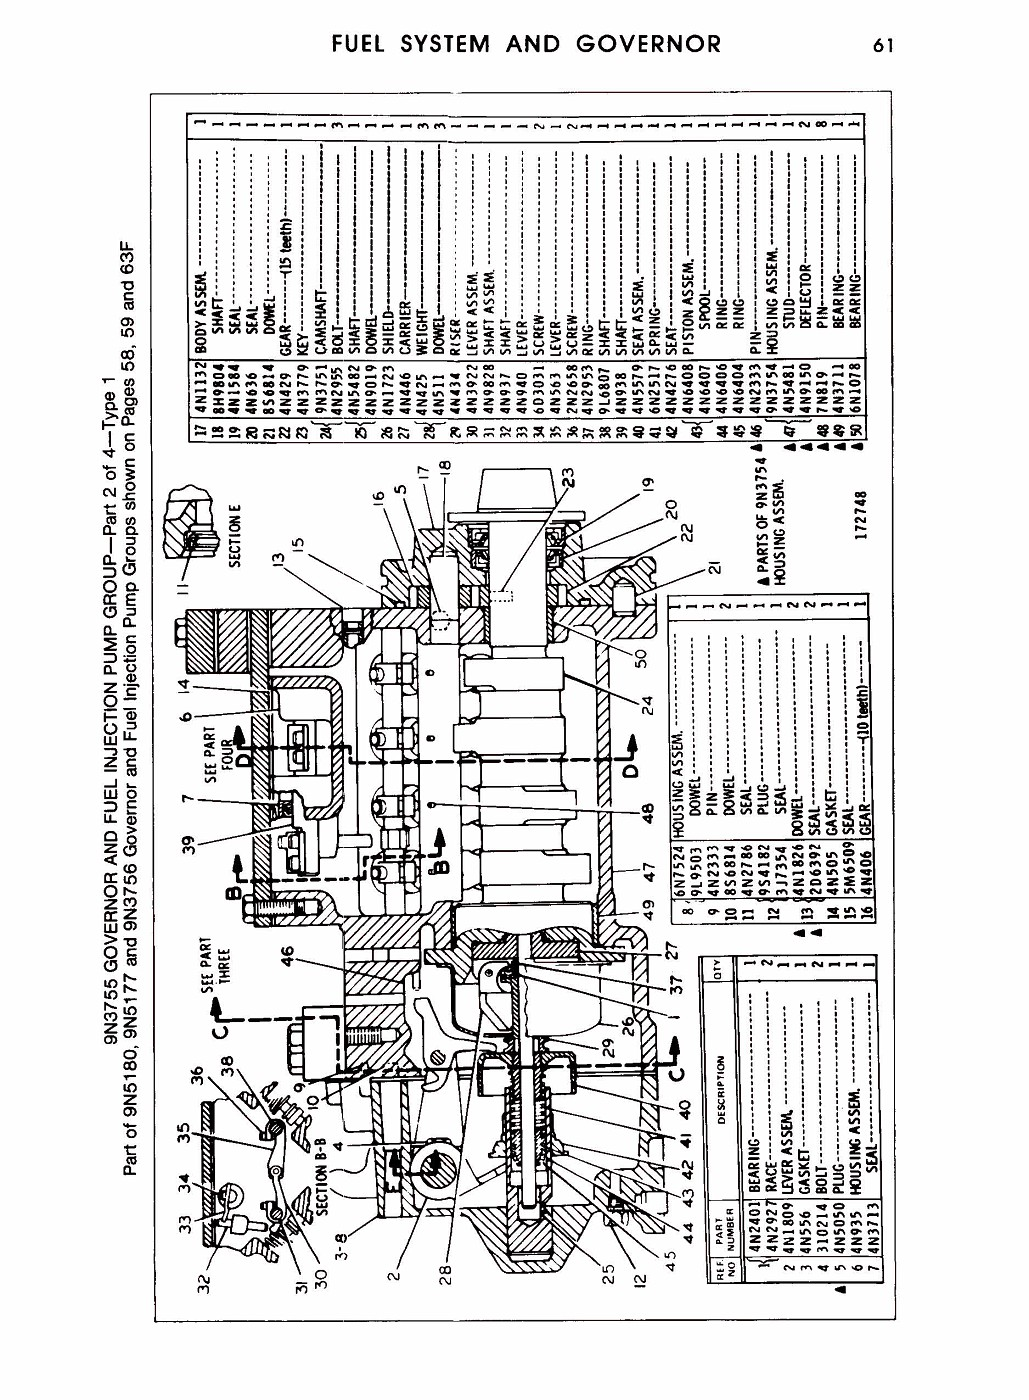 hight resolution of 3208 cat engine fuel pump diagram wiring library rh 47 bloxhuette de cat c15 engine parts manual caterpillar c7 engine parts manual pdf